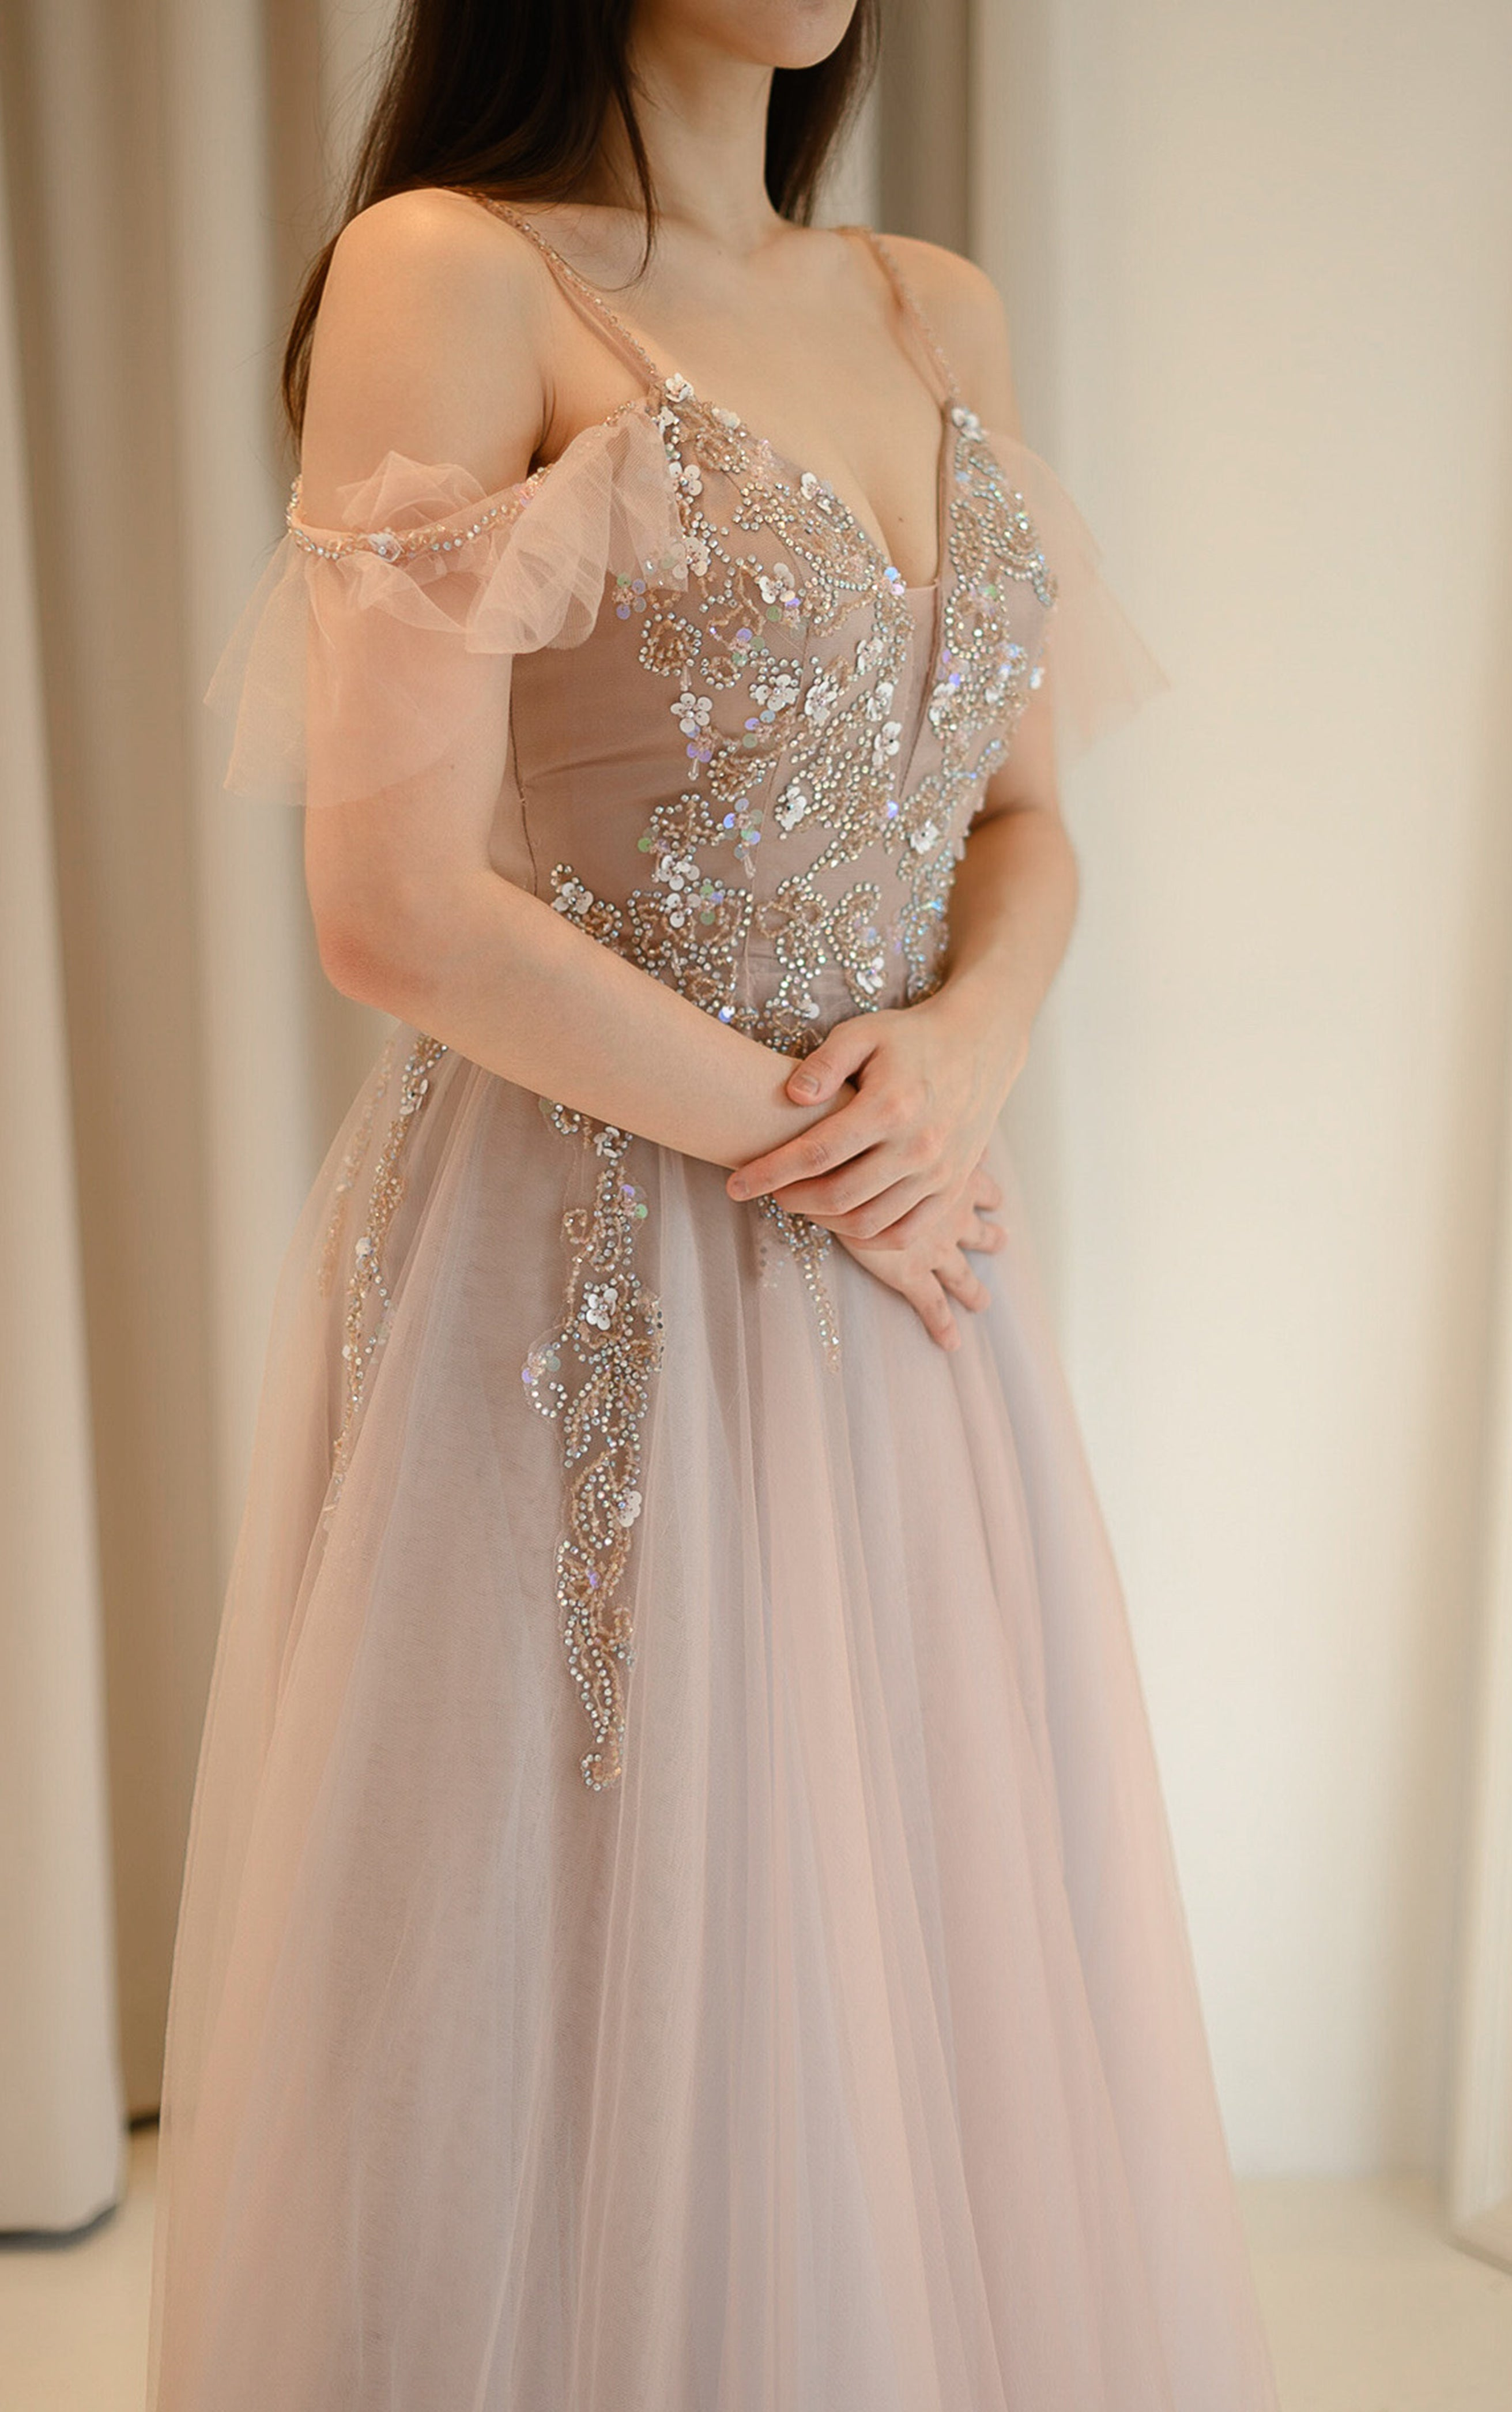 Lite Ana Pink Gown